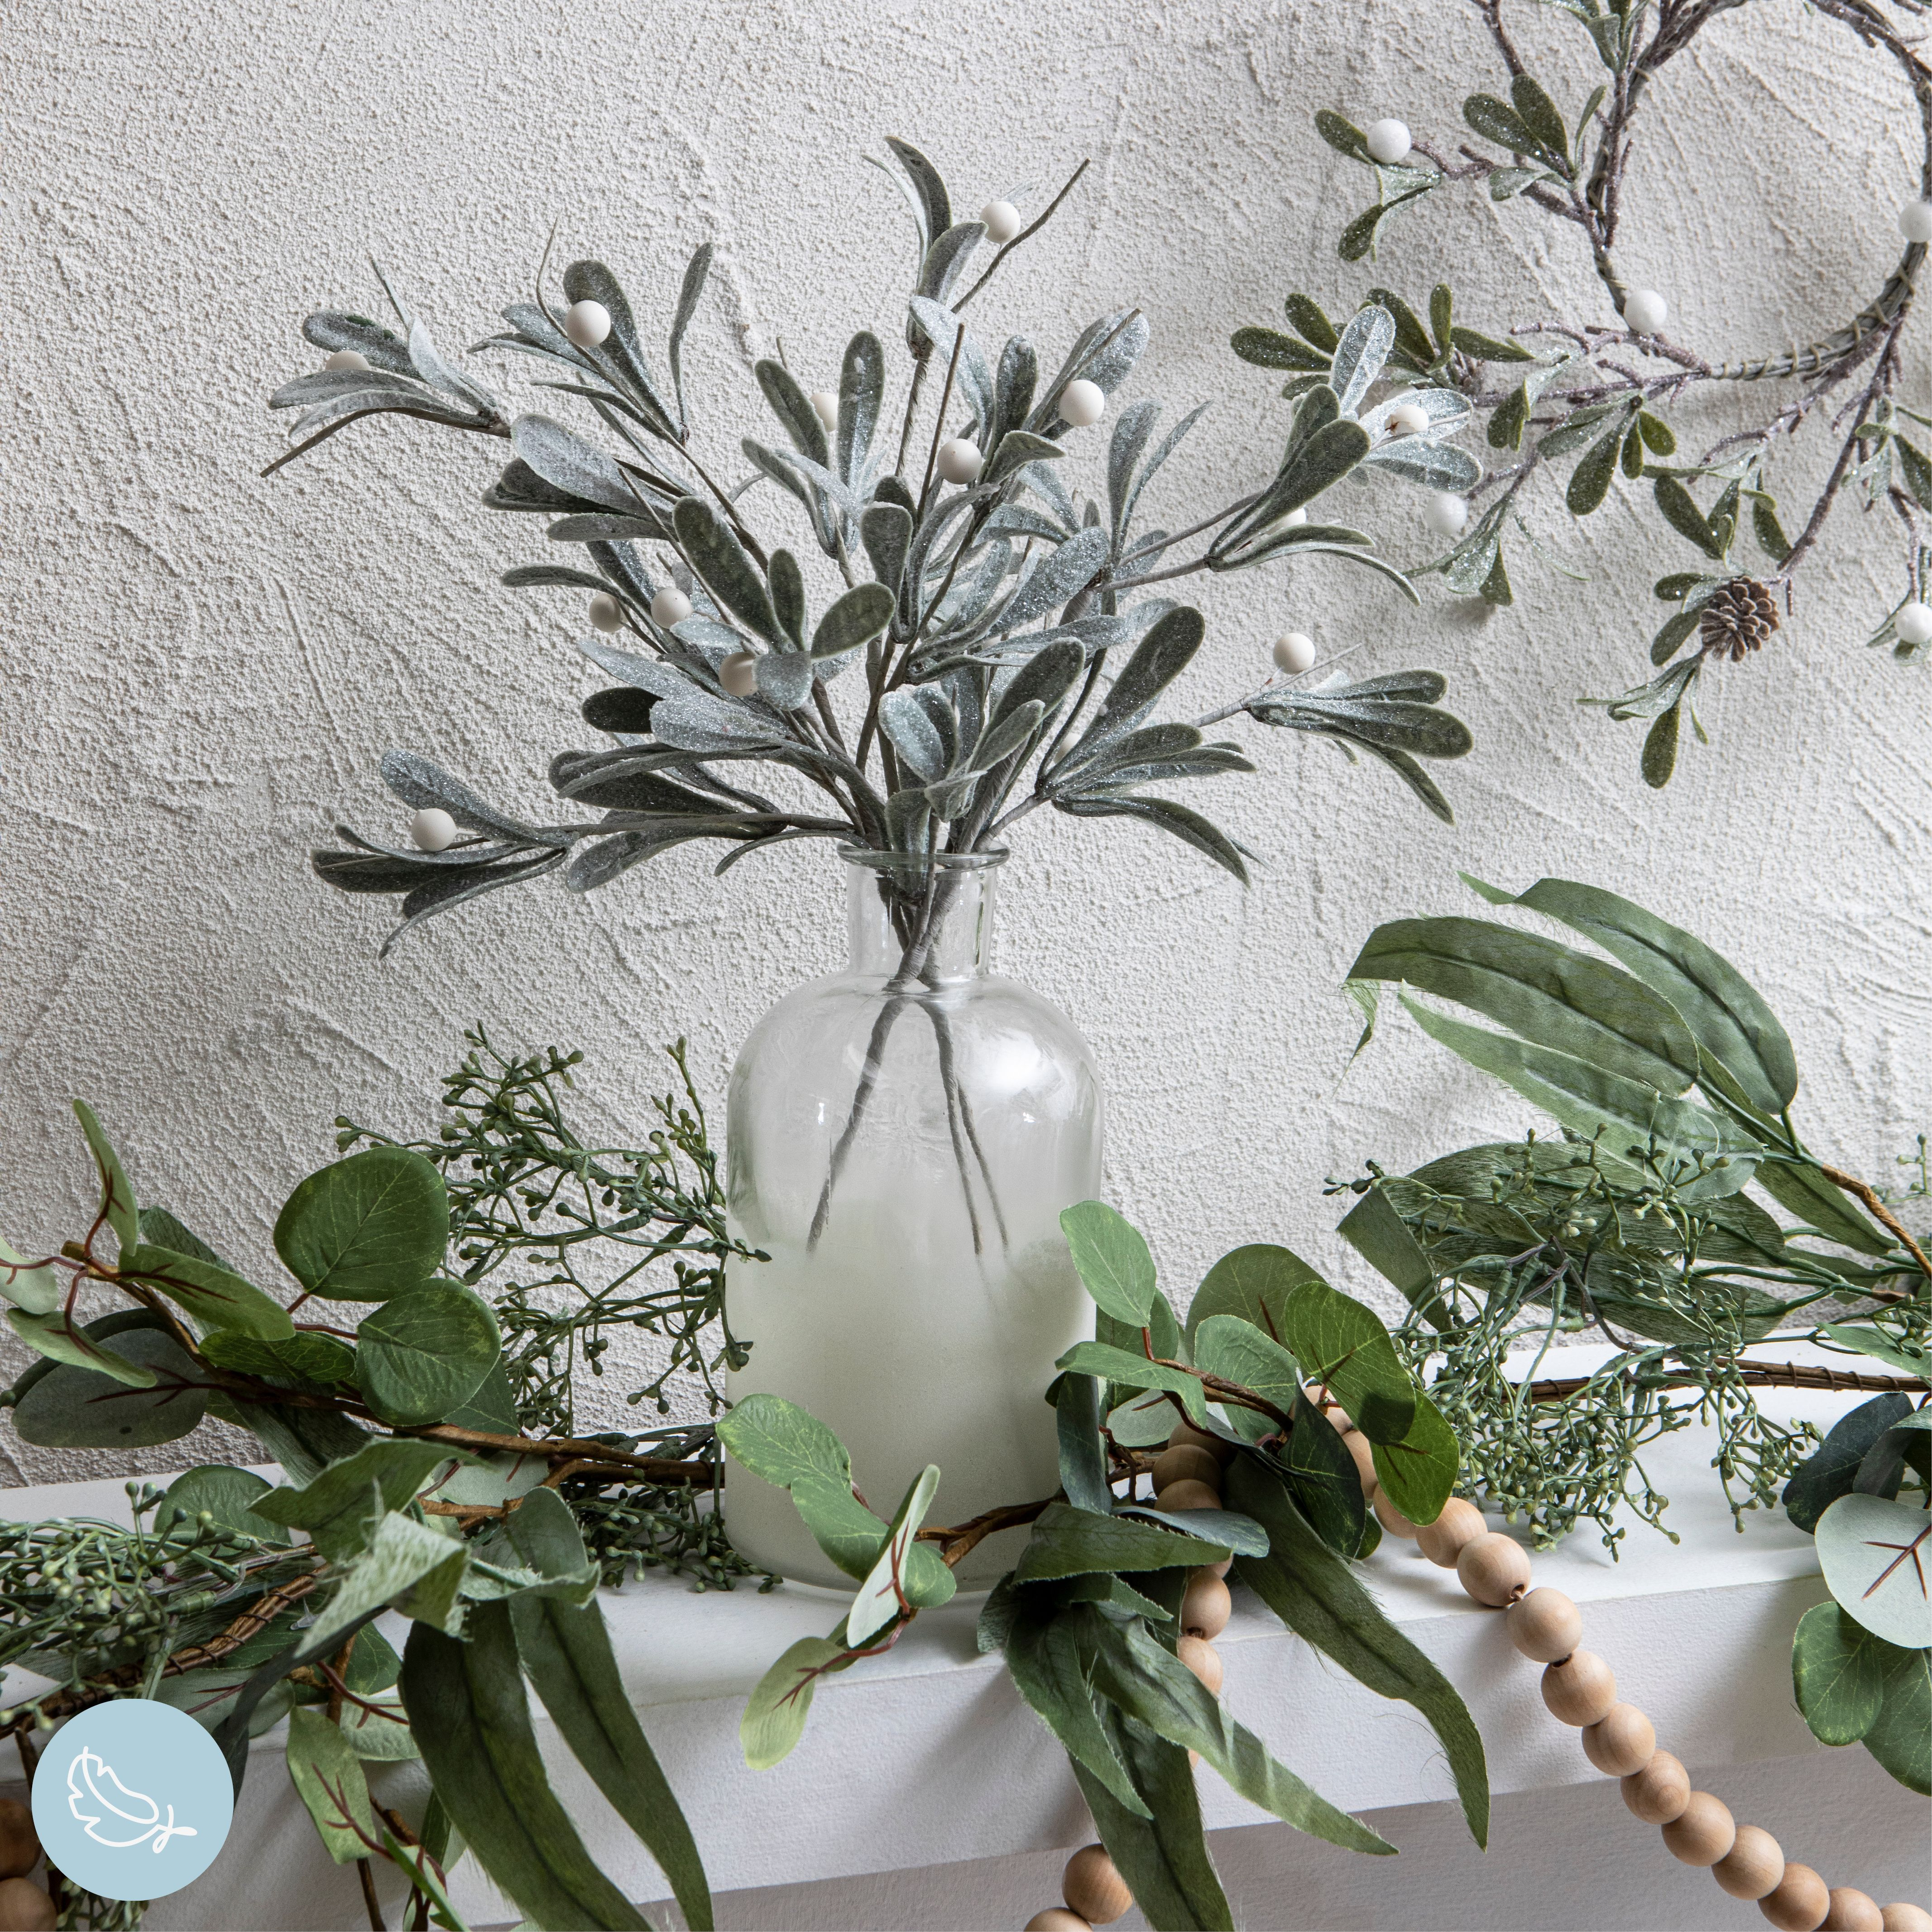 Simple can be completely beautiful with our stunning Christmas stems in a vase. Pair them alongside a Christmas garland (or two) for maximum effect! #christmas #xmas #gifts #christmasdecor #xmasdecor #christmasdinner #christmastable #christmashome #christmasstyle #holidaydecor #holidaygifts #holiday #christmasshoppingonline #holidayparty #christmasdecorations